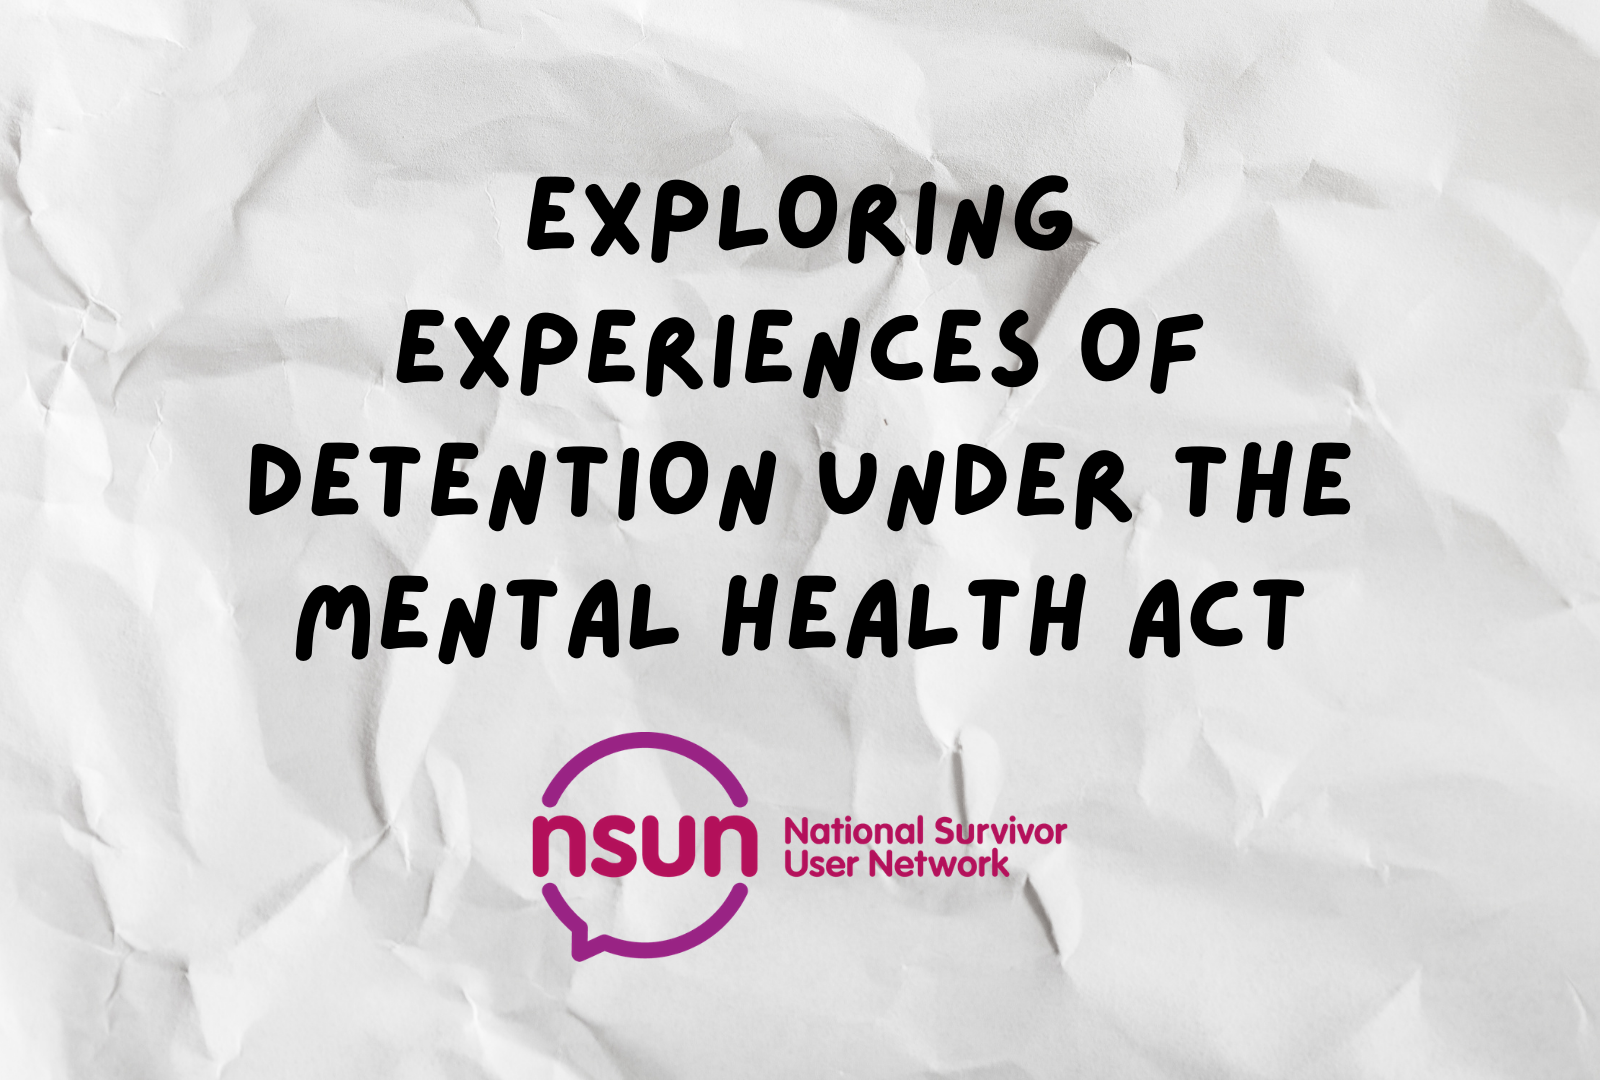 """Text on a background of white crinkled paper. The text says """"exploring experiences of detention under the mental health act"""" in bold black capital letters and the NSUN logo is underneath the text"""